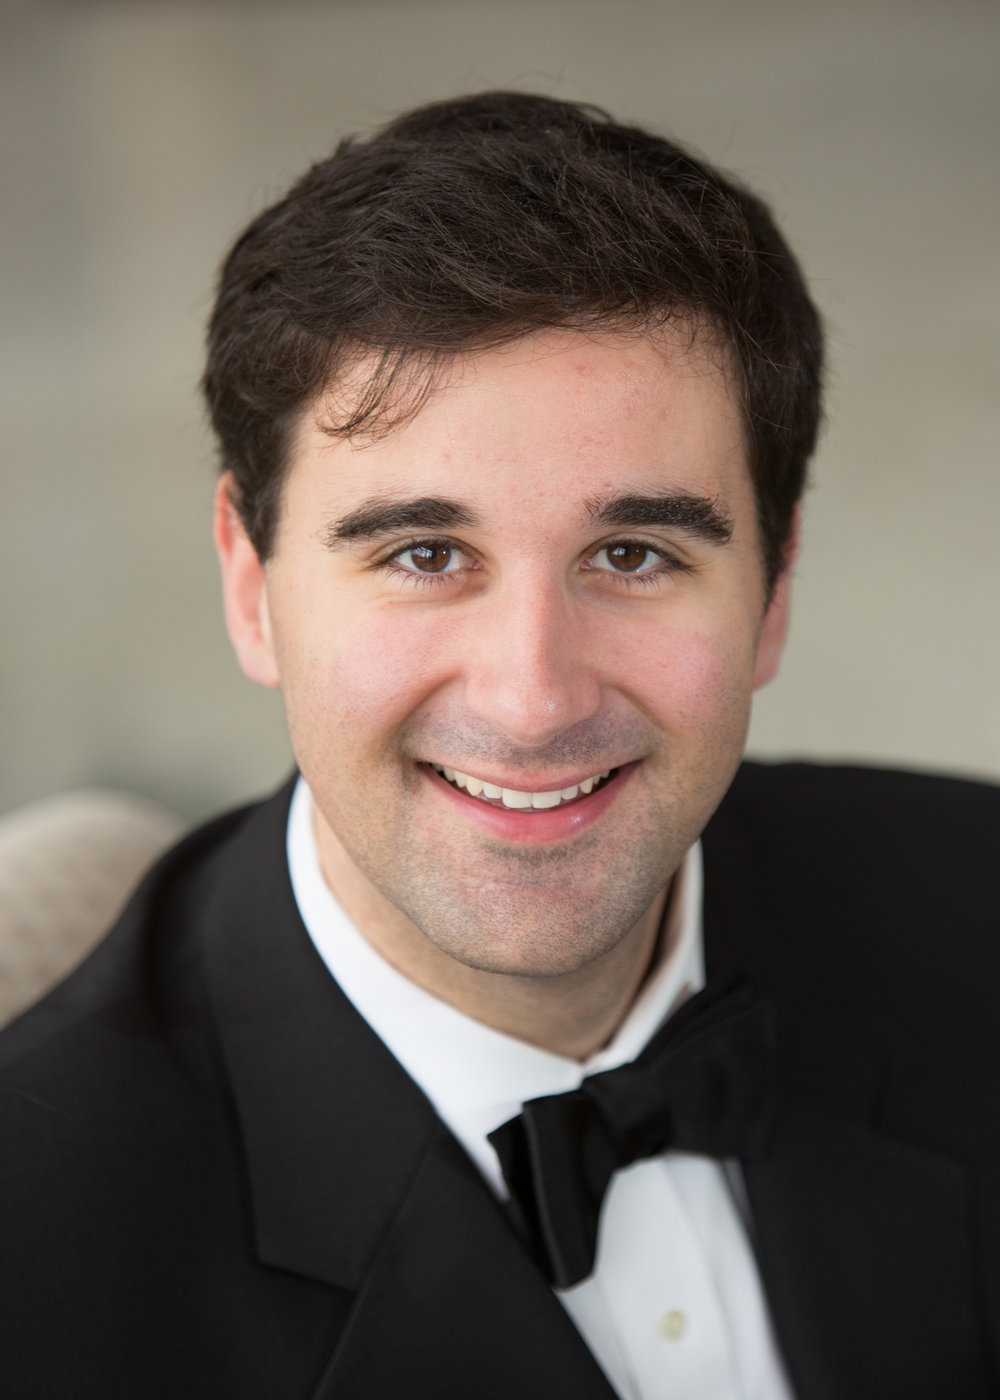 Fran Rogers - Award winning tenor Fran Rogers (Don José) has been critically acclaimed for his